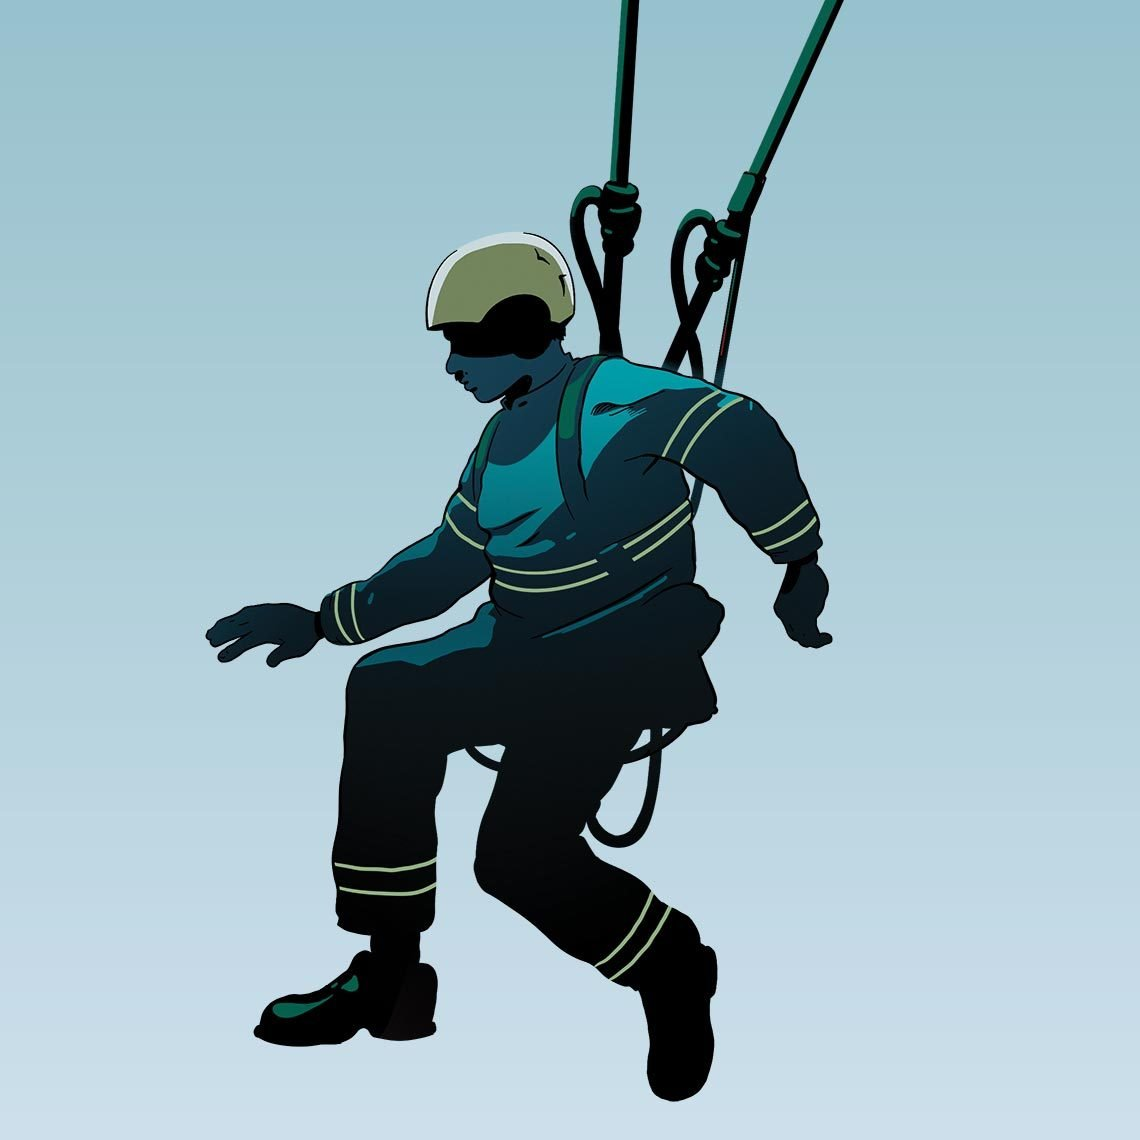 illustration of a rescuer in a harness